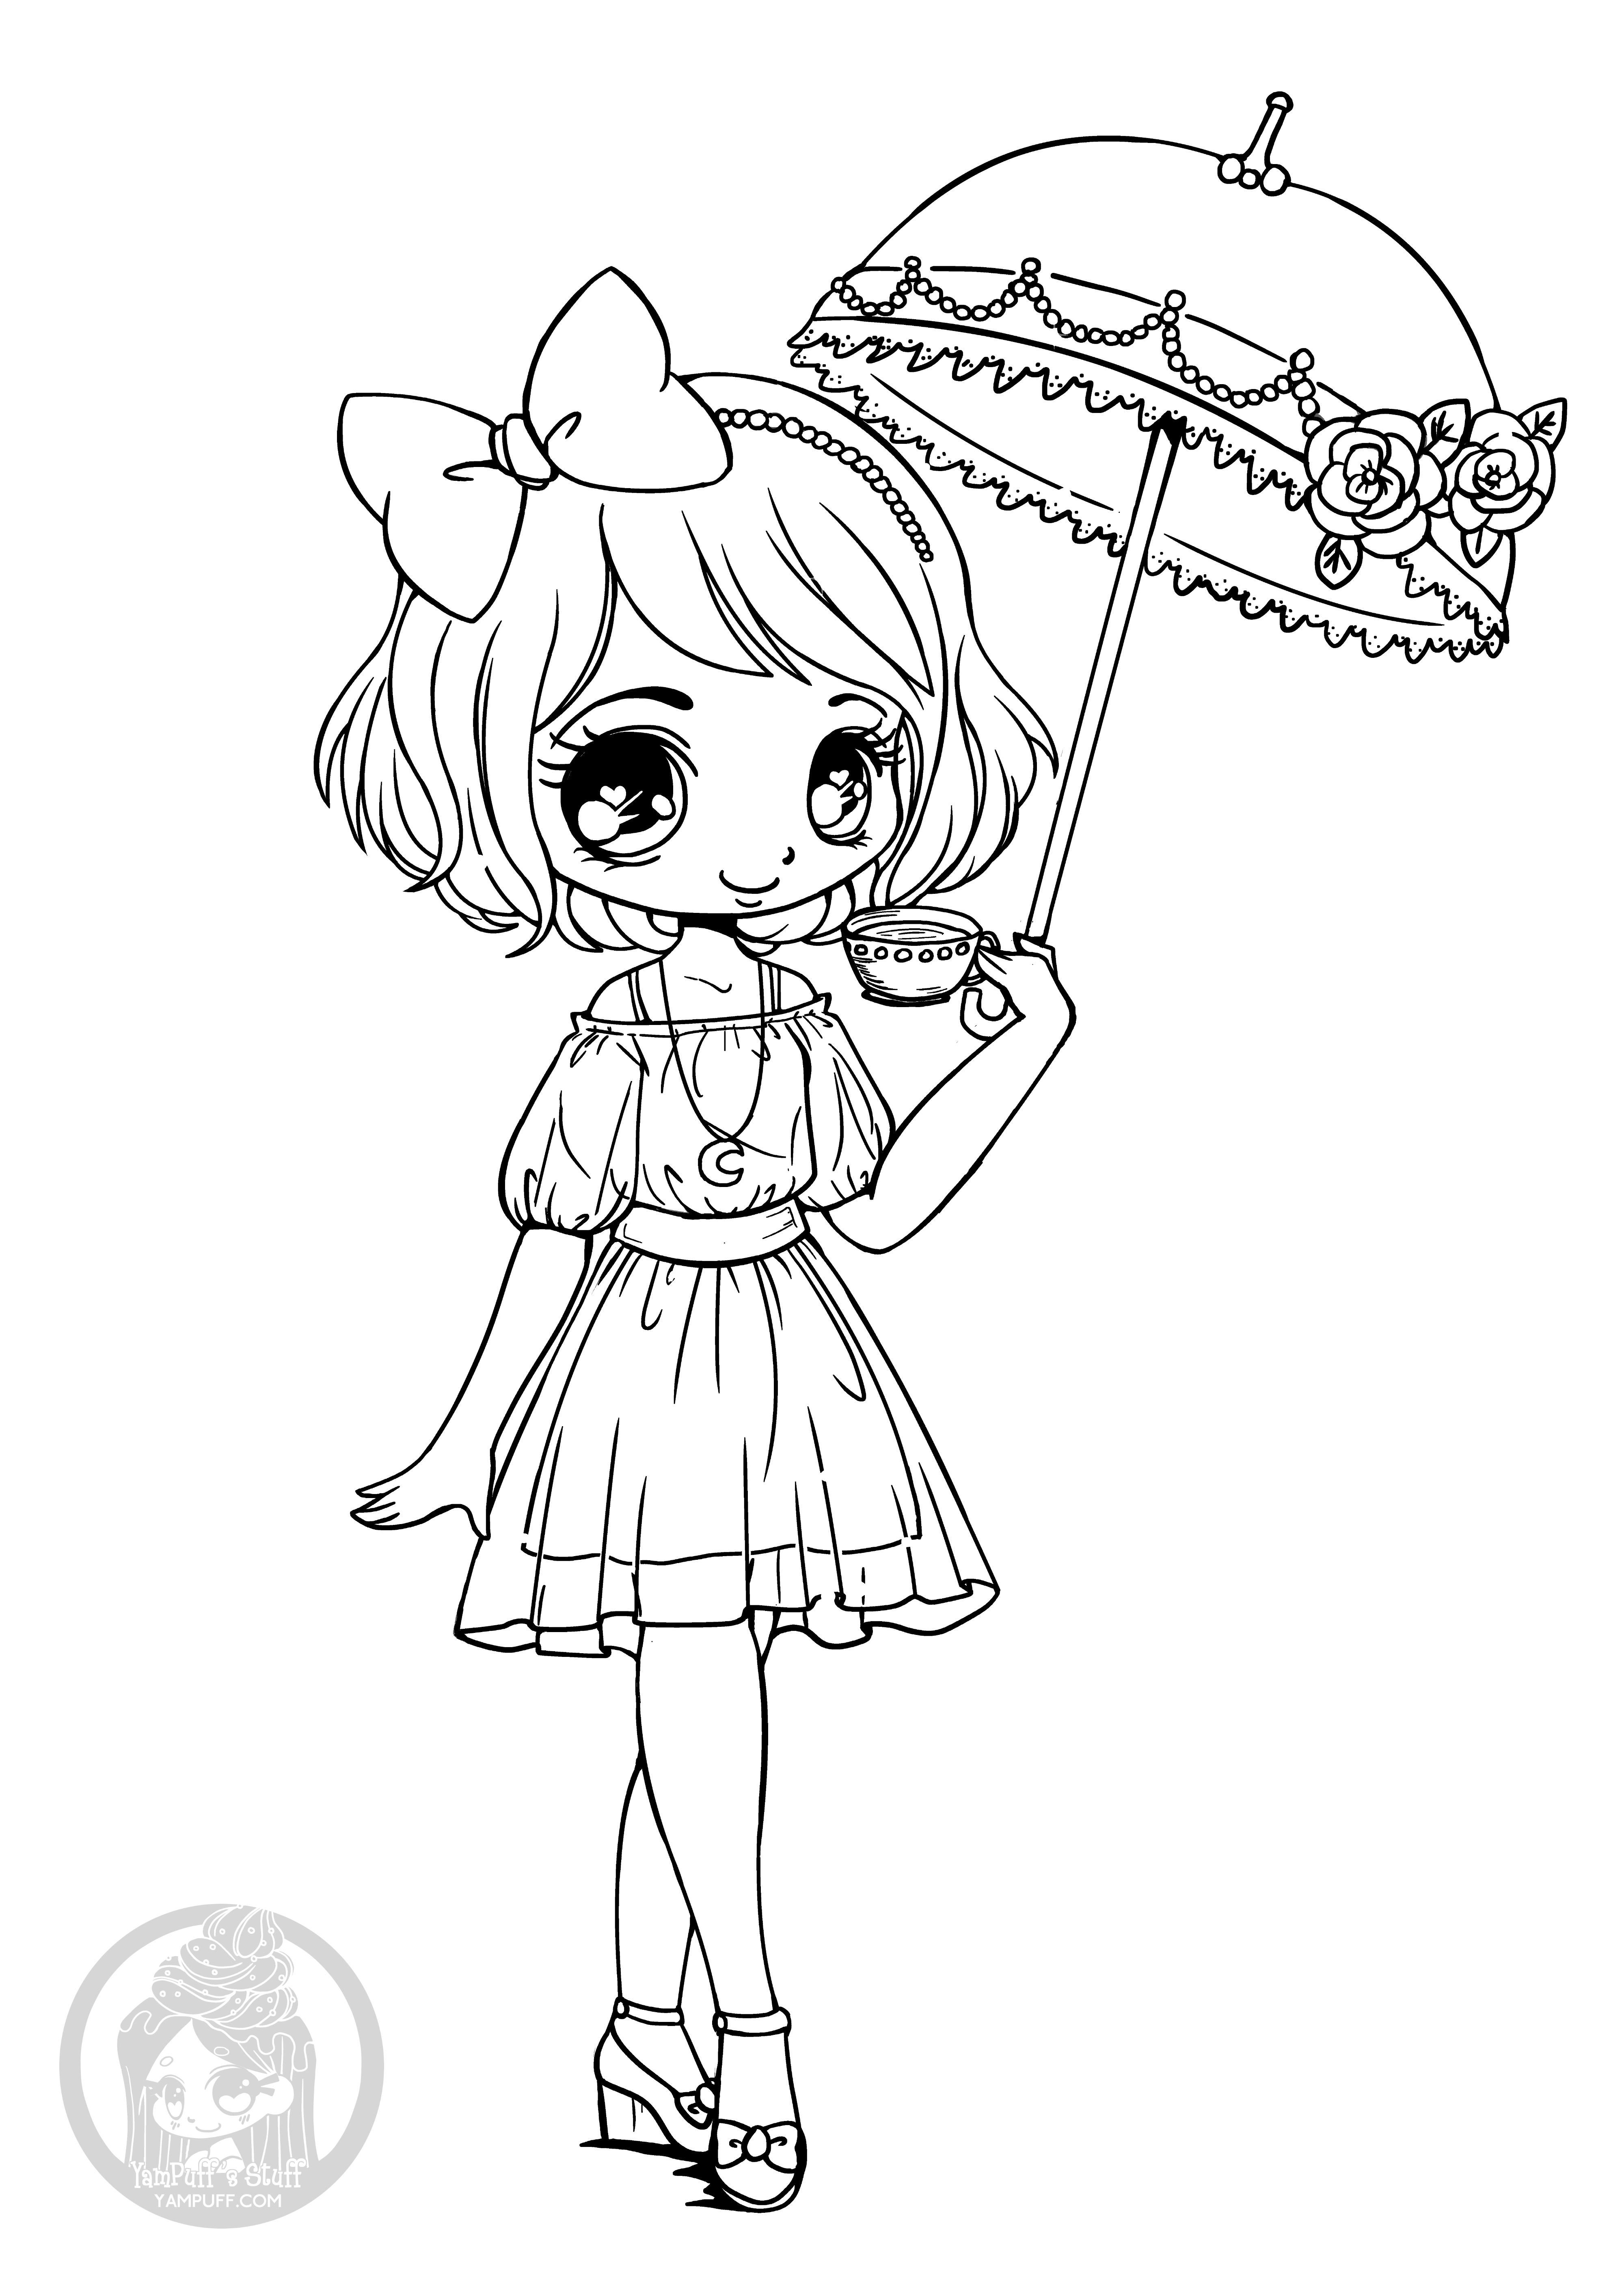 chibi girl coloring pages cute girls coloring pages coloring home pages girl coloring chibi